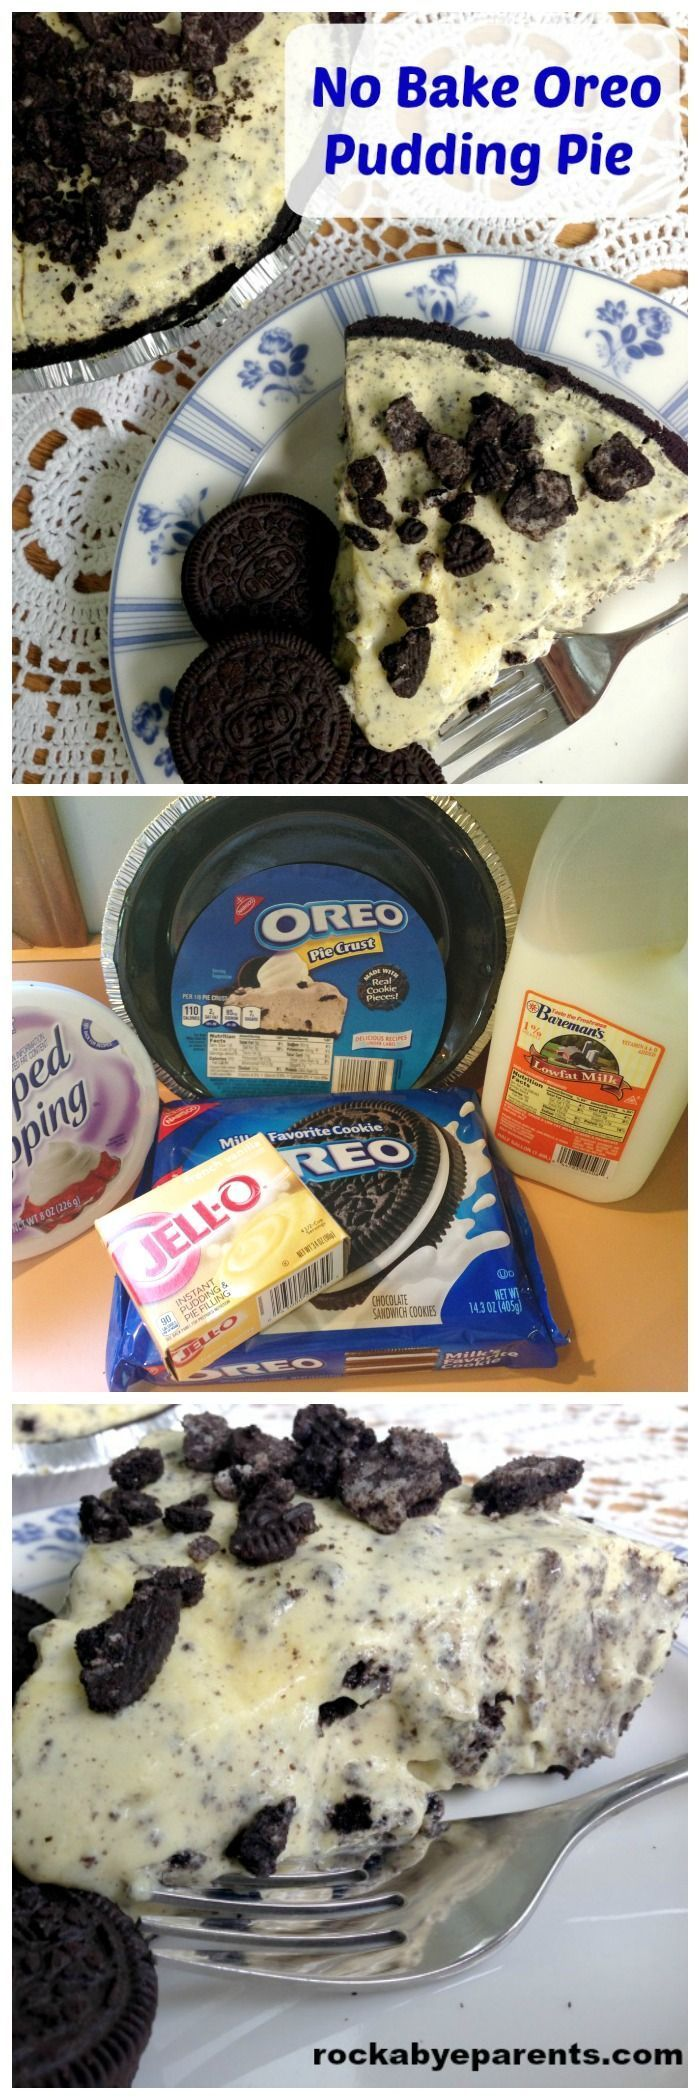 No Bake Oreo Pudding Pie: This dessert is so yummy, and even better it's quick and easy to make! - http://rockabyeparents.com